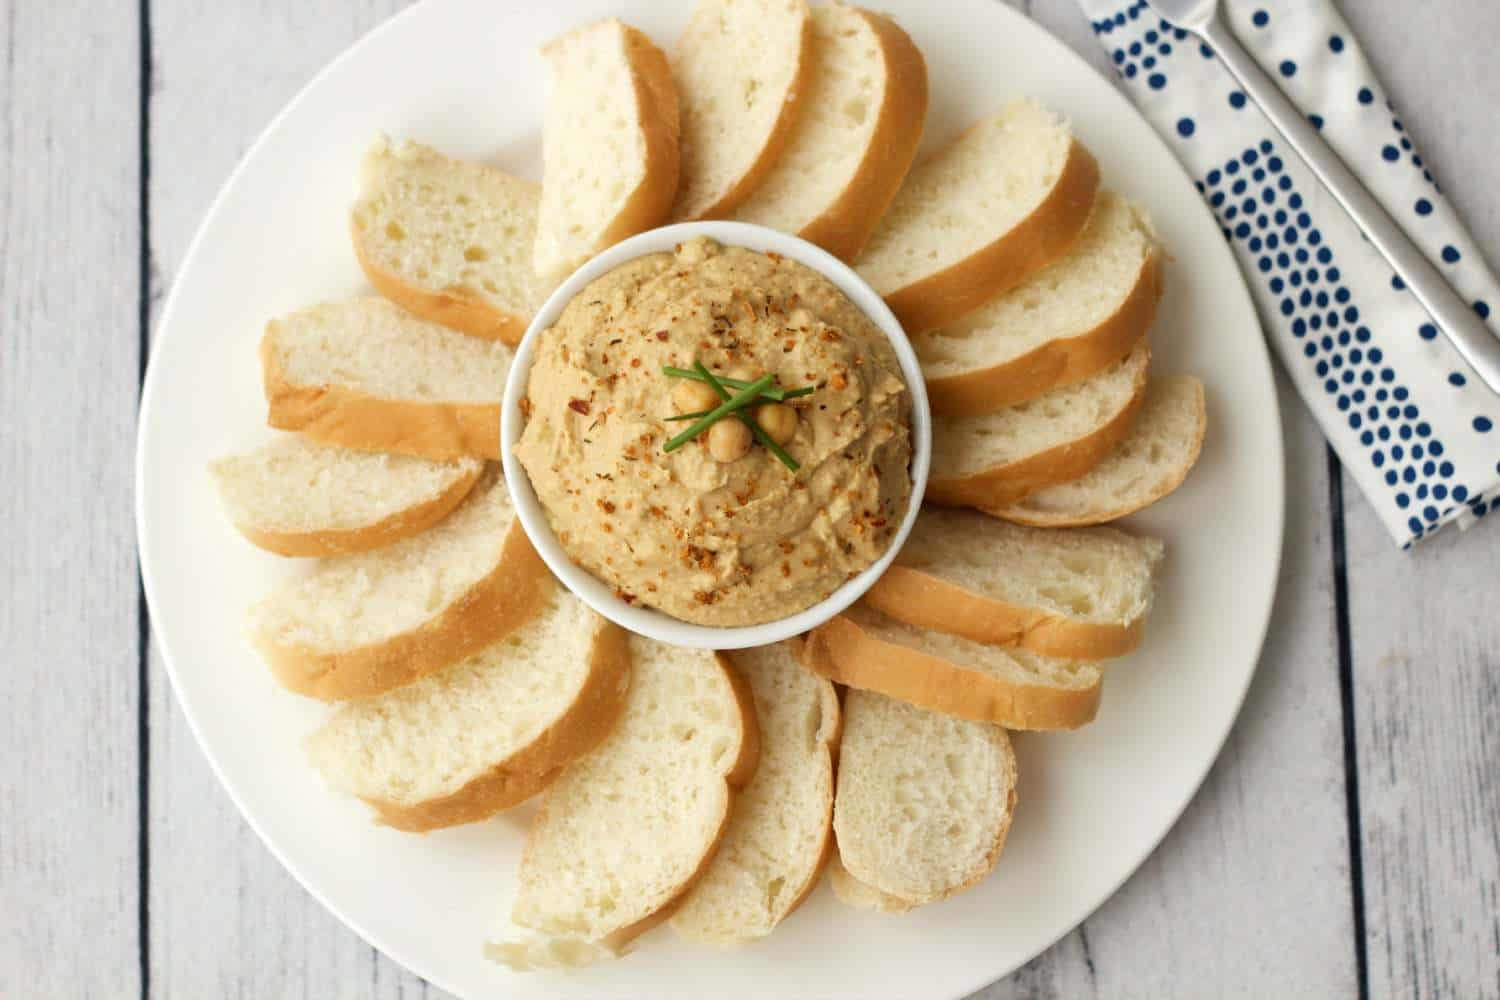 Perfectly spiced 8-Ingredient Hummus that you can whip up in 5 minutes. #vegan #lovingitvegan #gluten-free #oil-free